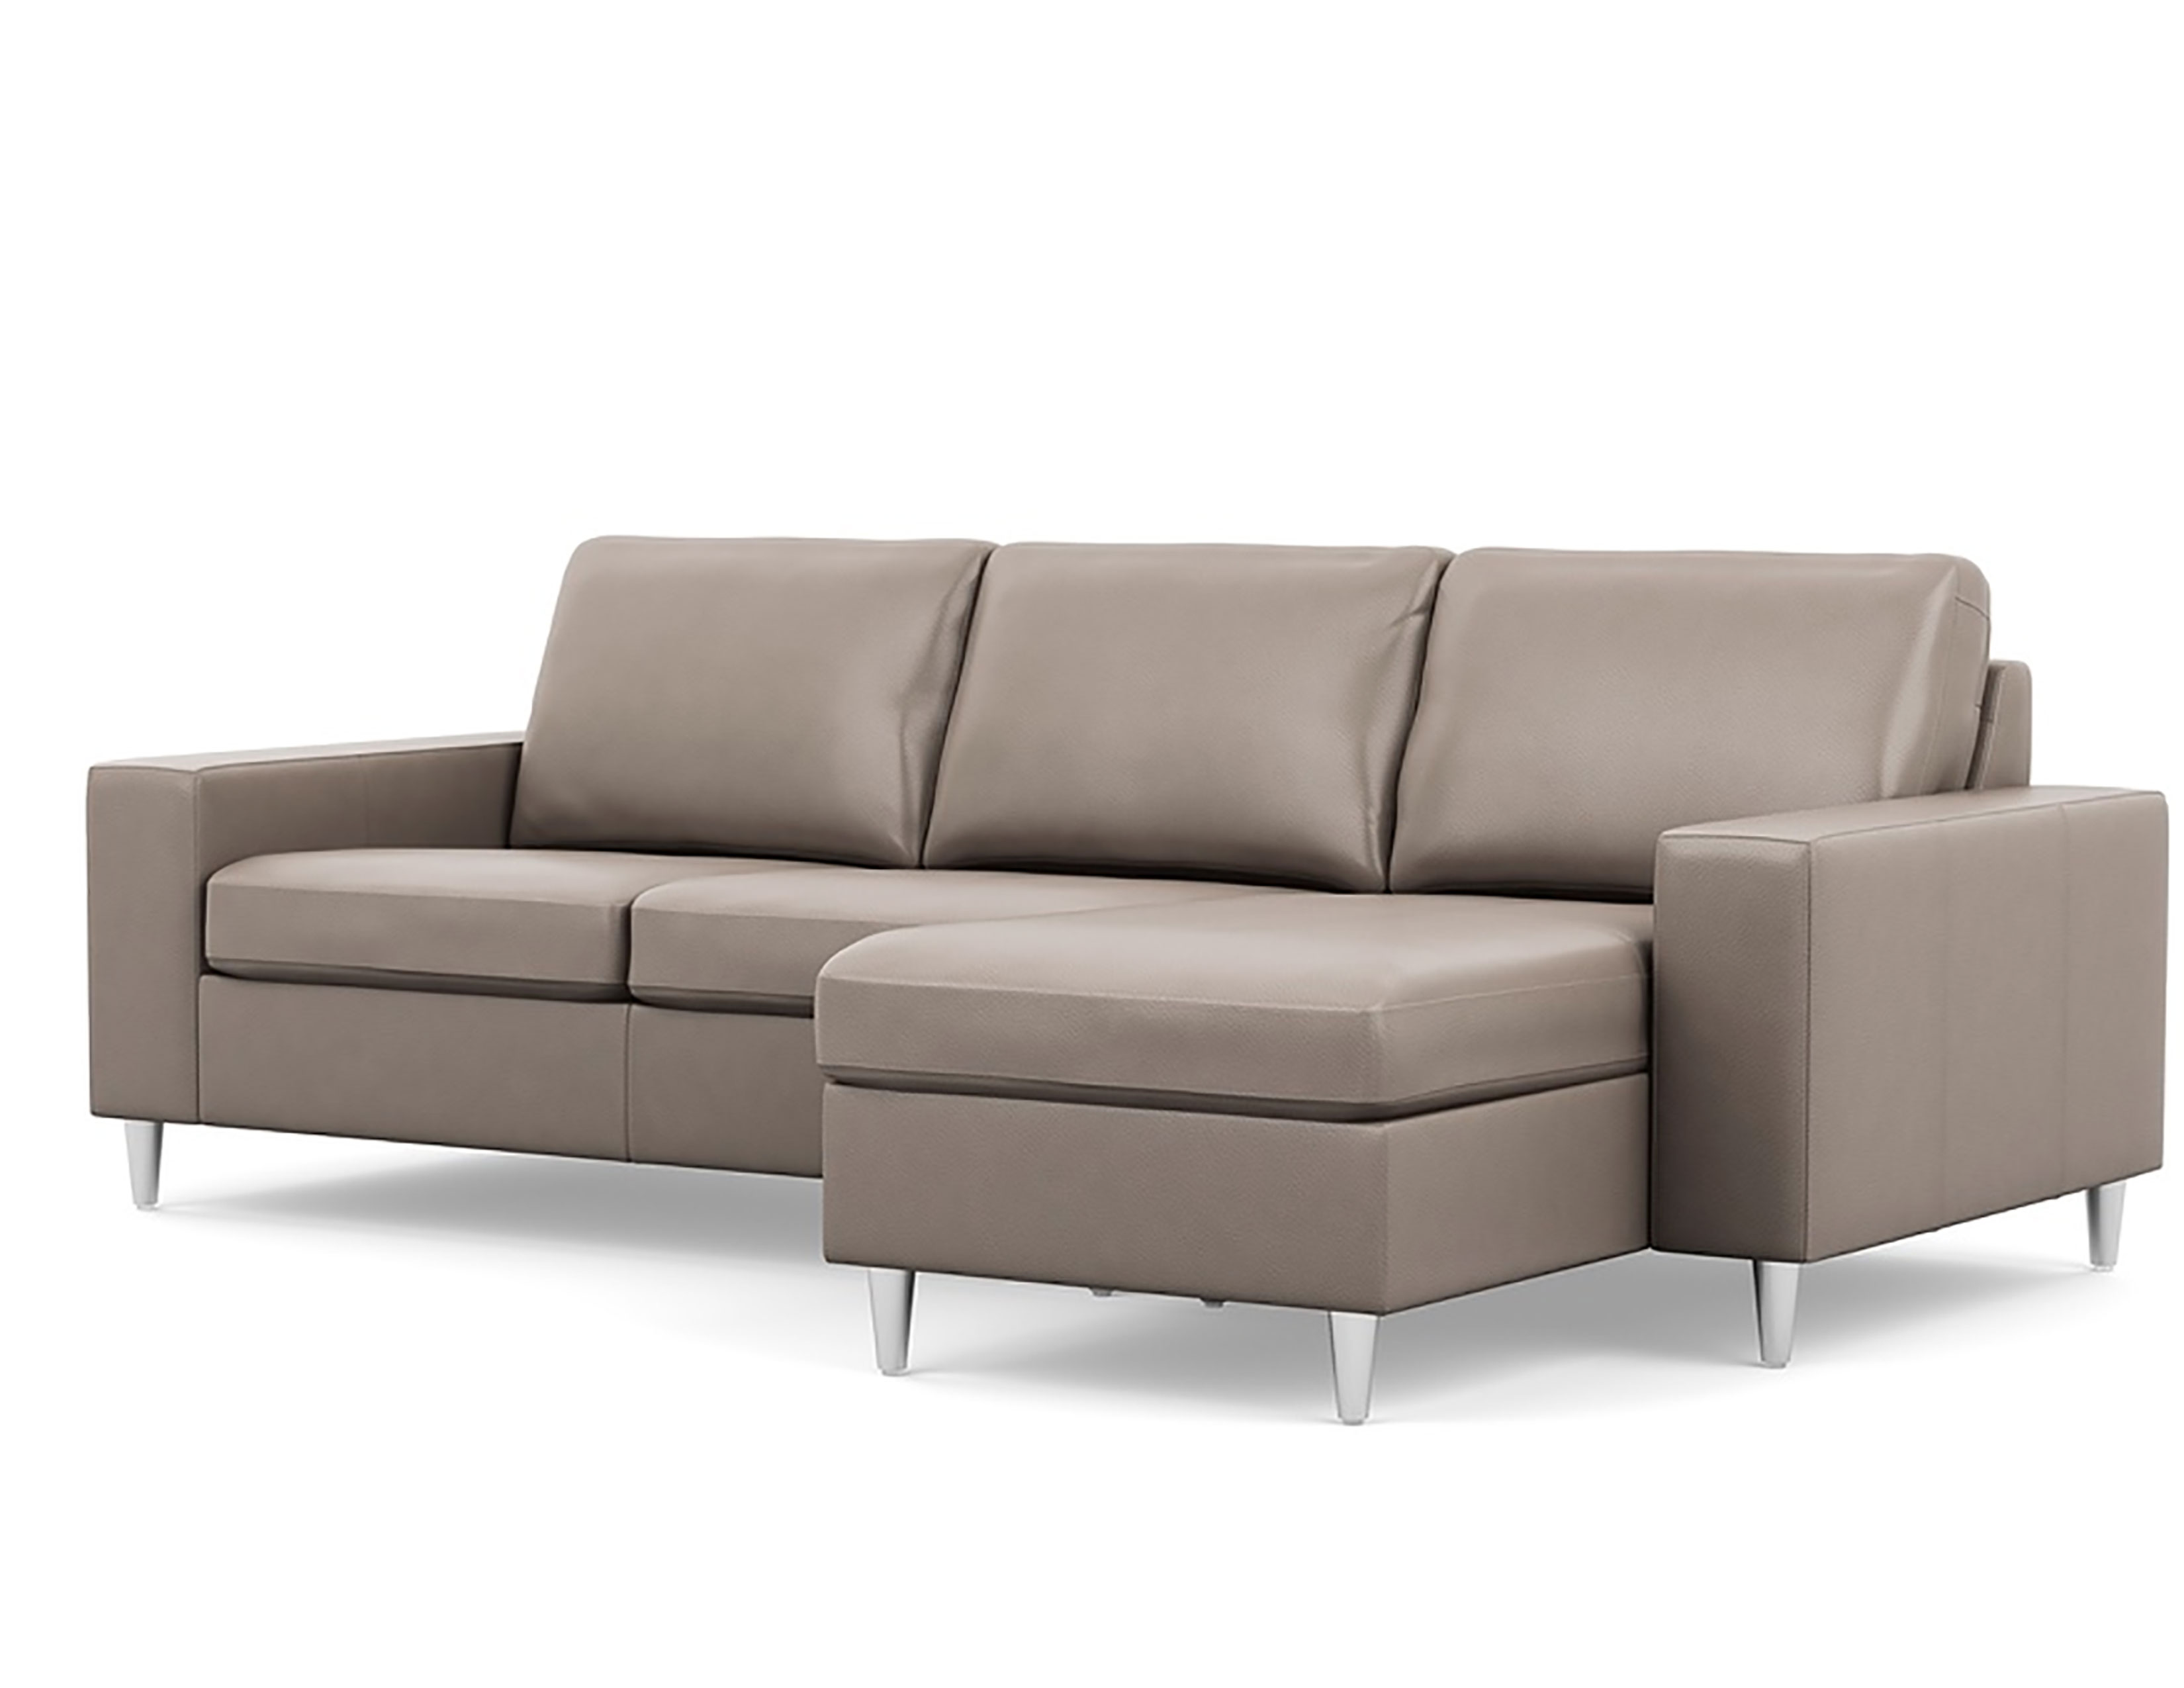 Fantastic Bello High Leg Chaise Sofa Or Sectional Chaise Sofas And Ncnpc Chair Design For Home Ncnpcorg